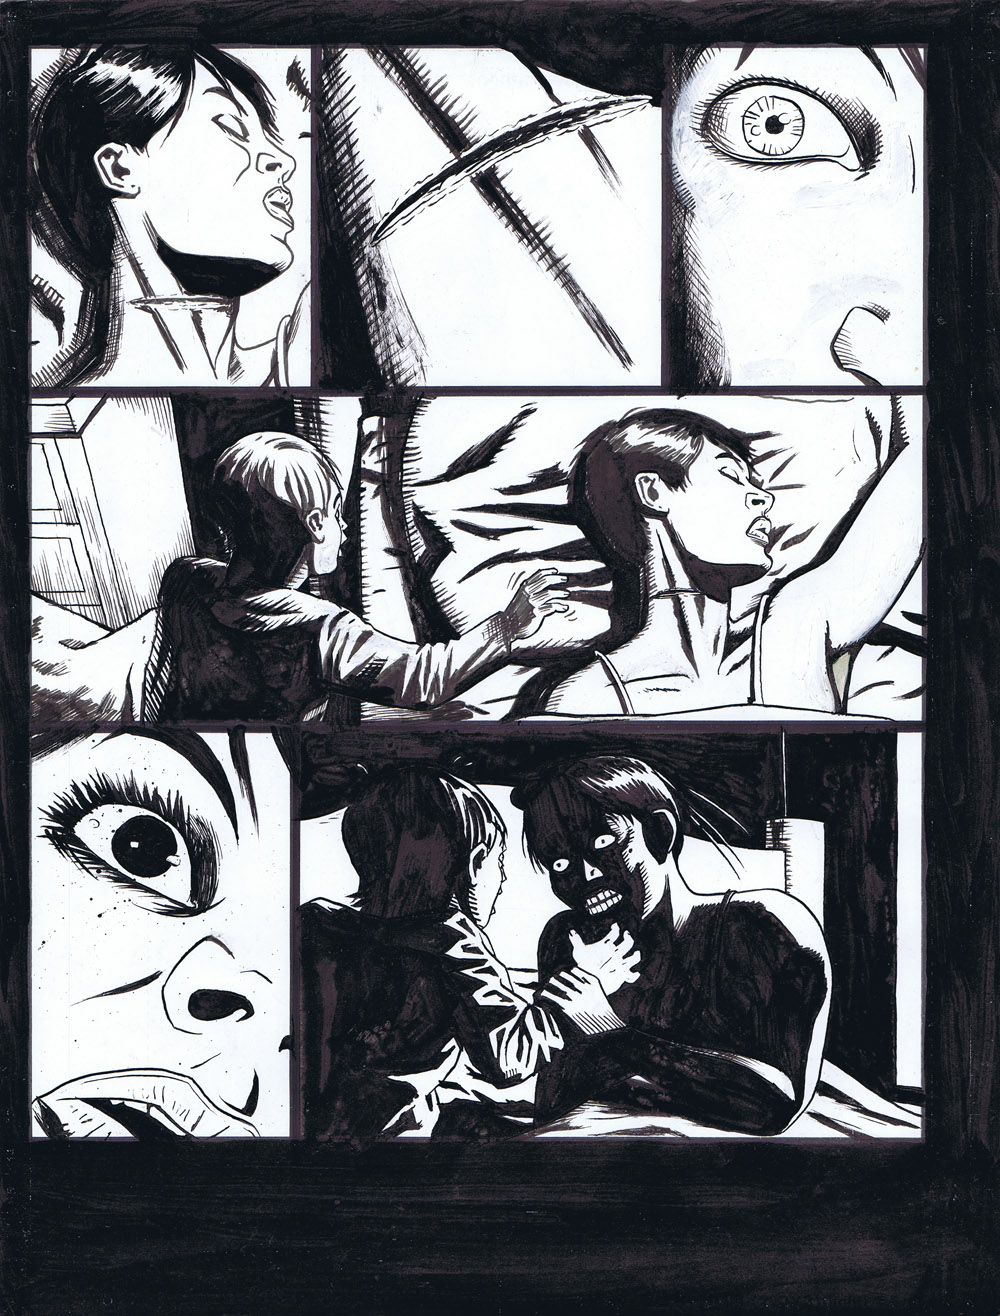 Sand & Fury: A Scream Queen Adventure - pg 053